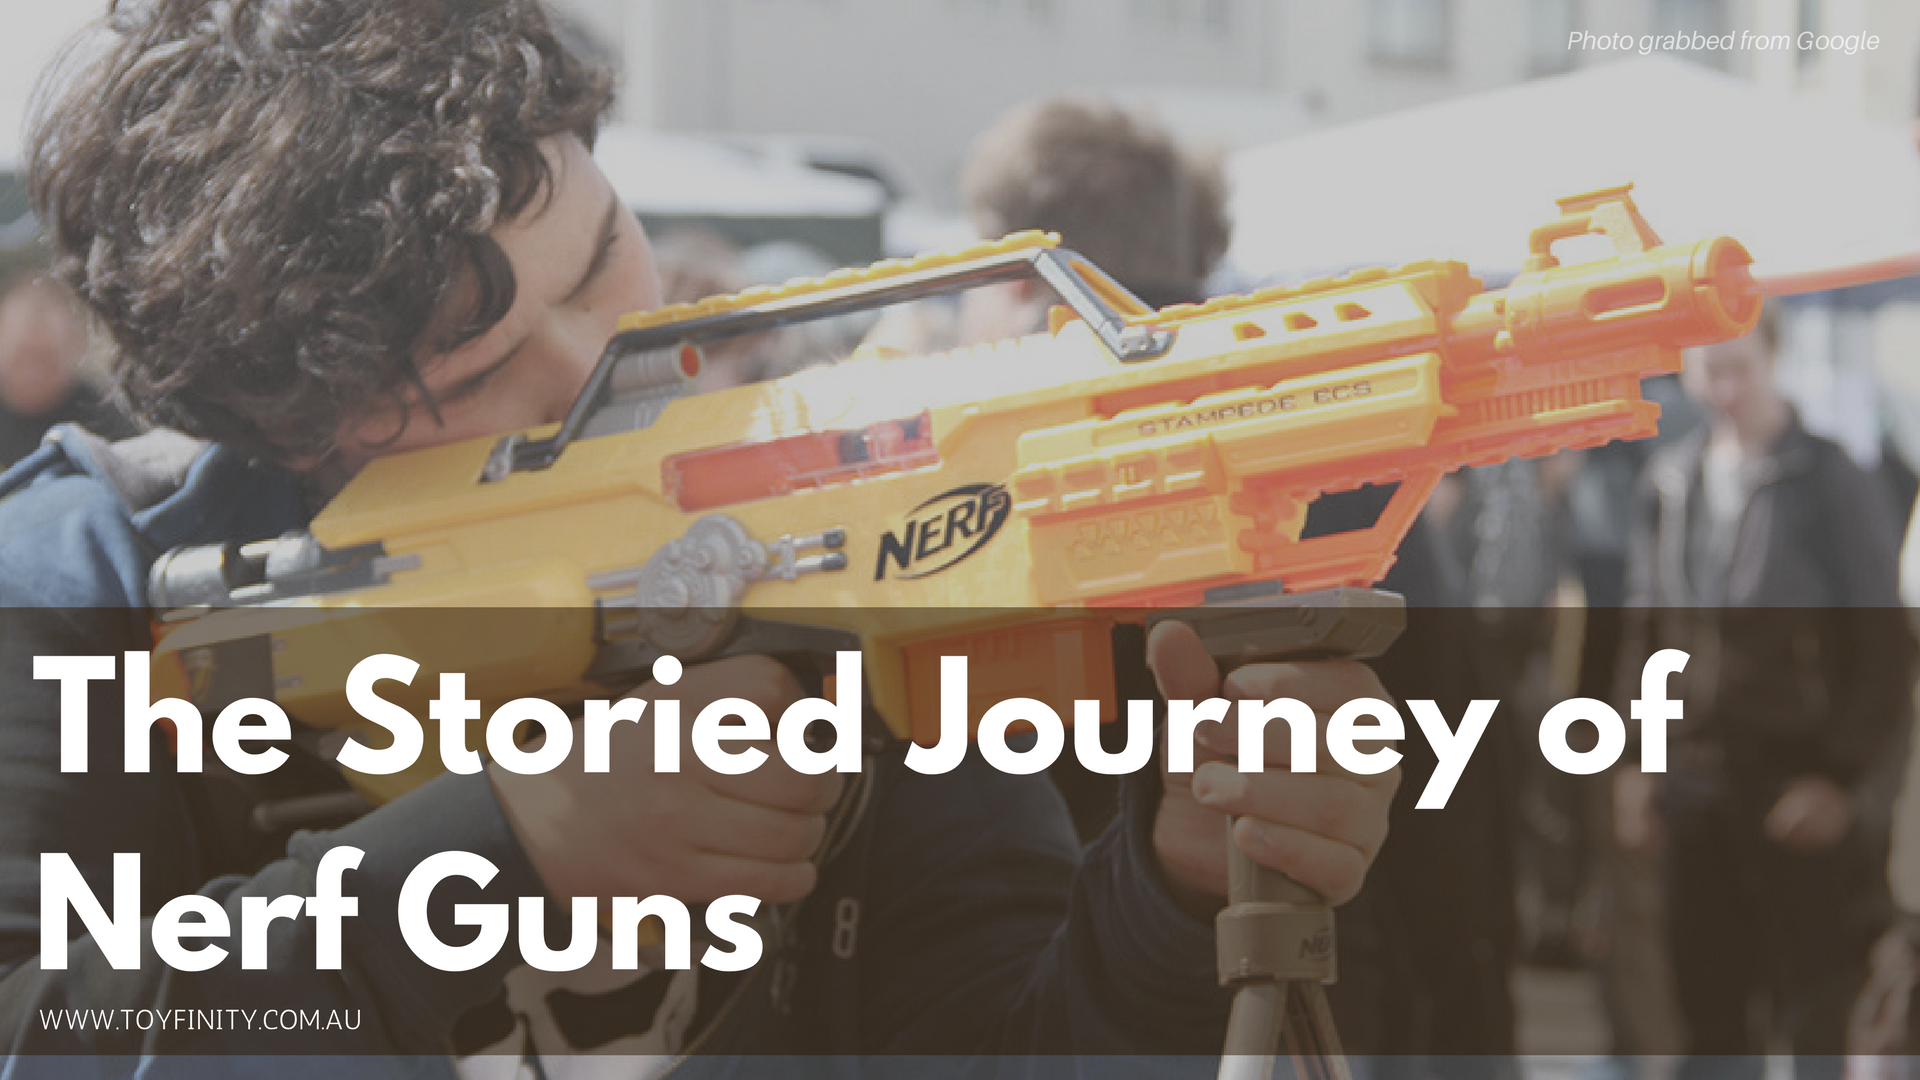 ... different Nerf guns but now is the good time to arm yourself with its  history and how they grew to become so popular today.